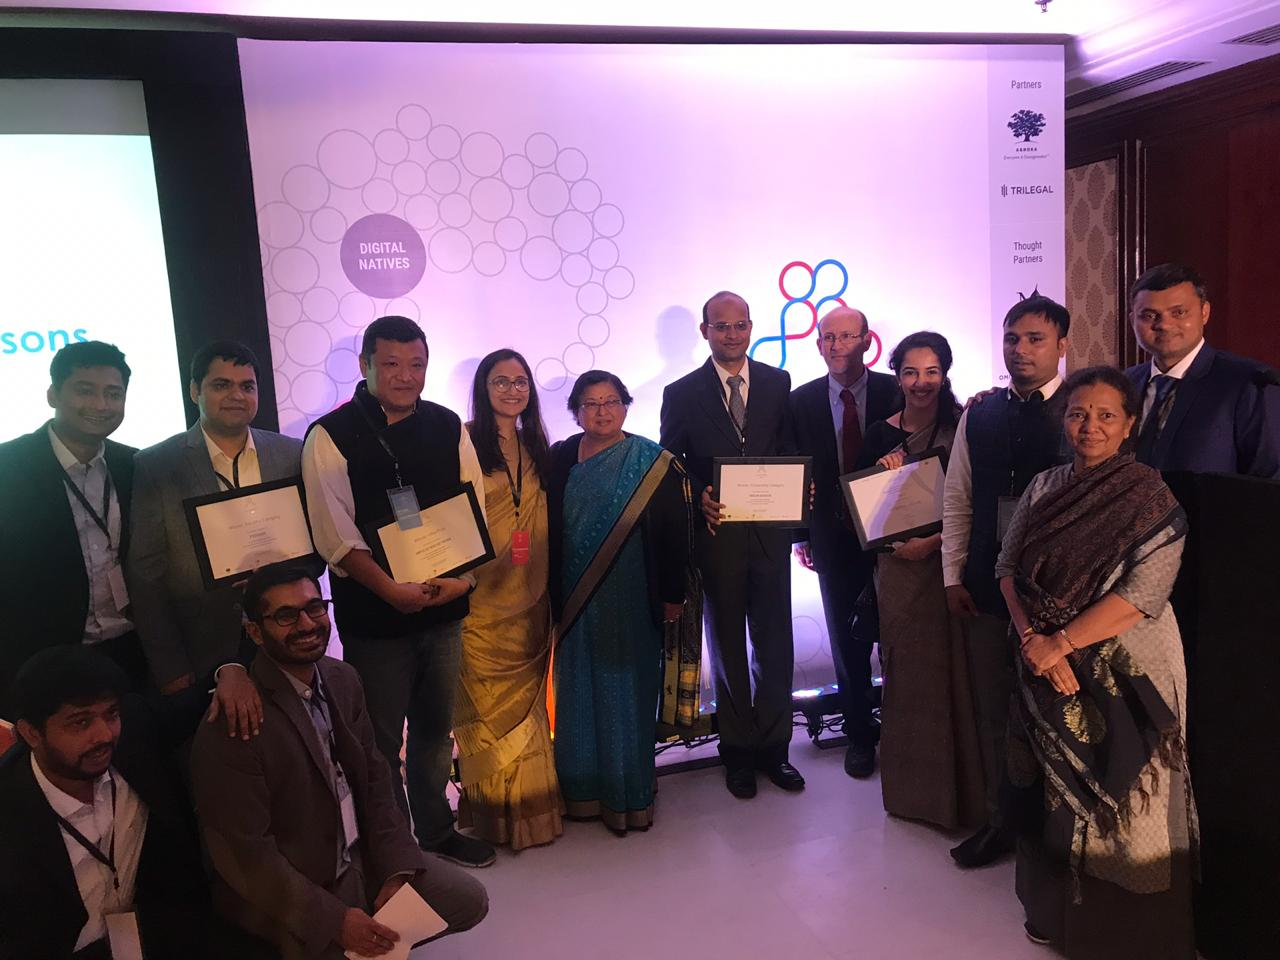 The winners of the Agami Prize, State Innovation Showcase presentees, keynote speaker Carl Malamud, Organizers and the Hon'ble Chief Justice Gita Mittal.